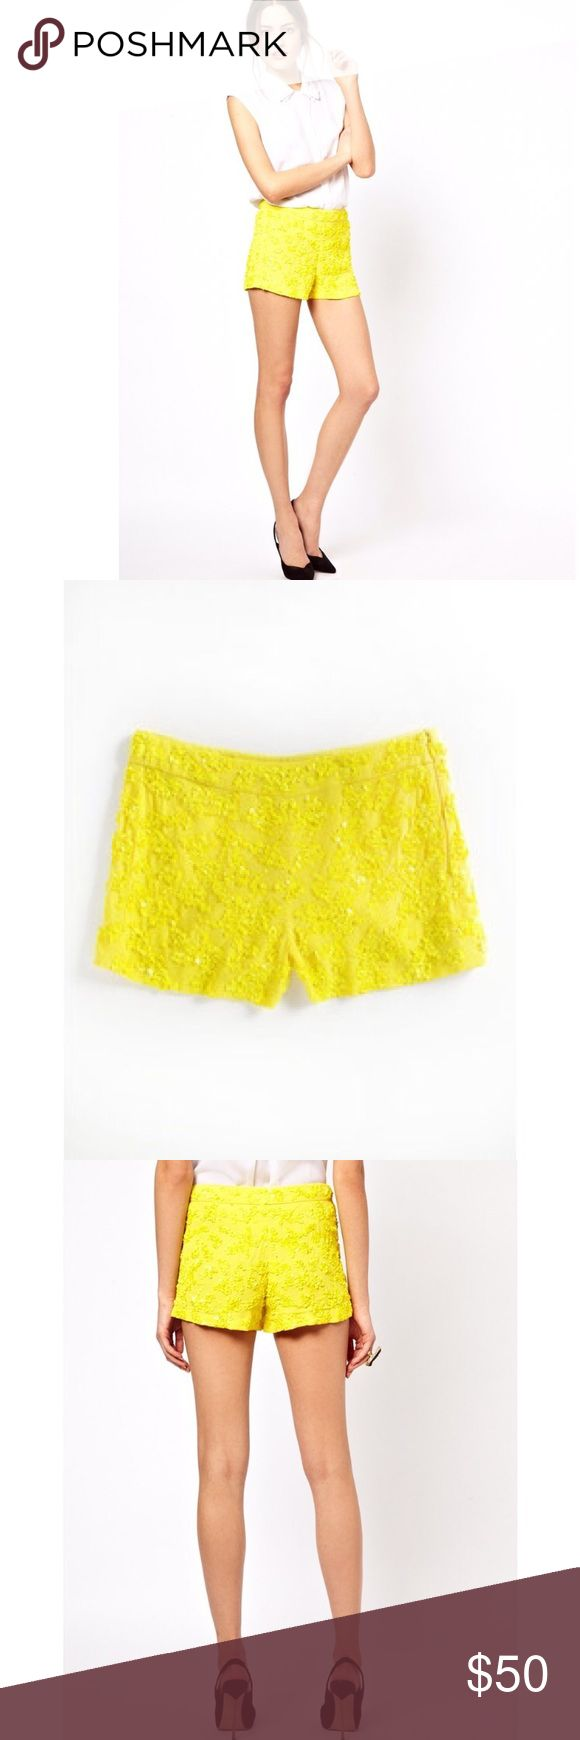 NWT French connection yellow sequin shorts size 0 French connection yellow sequin short 0, brand new with tags, never worn. Gorgeous! French Connection Shorts